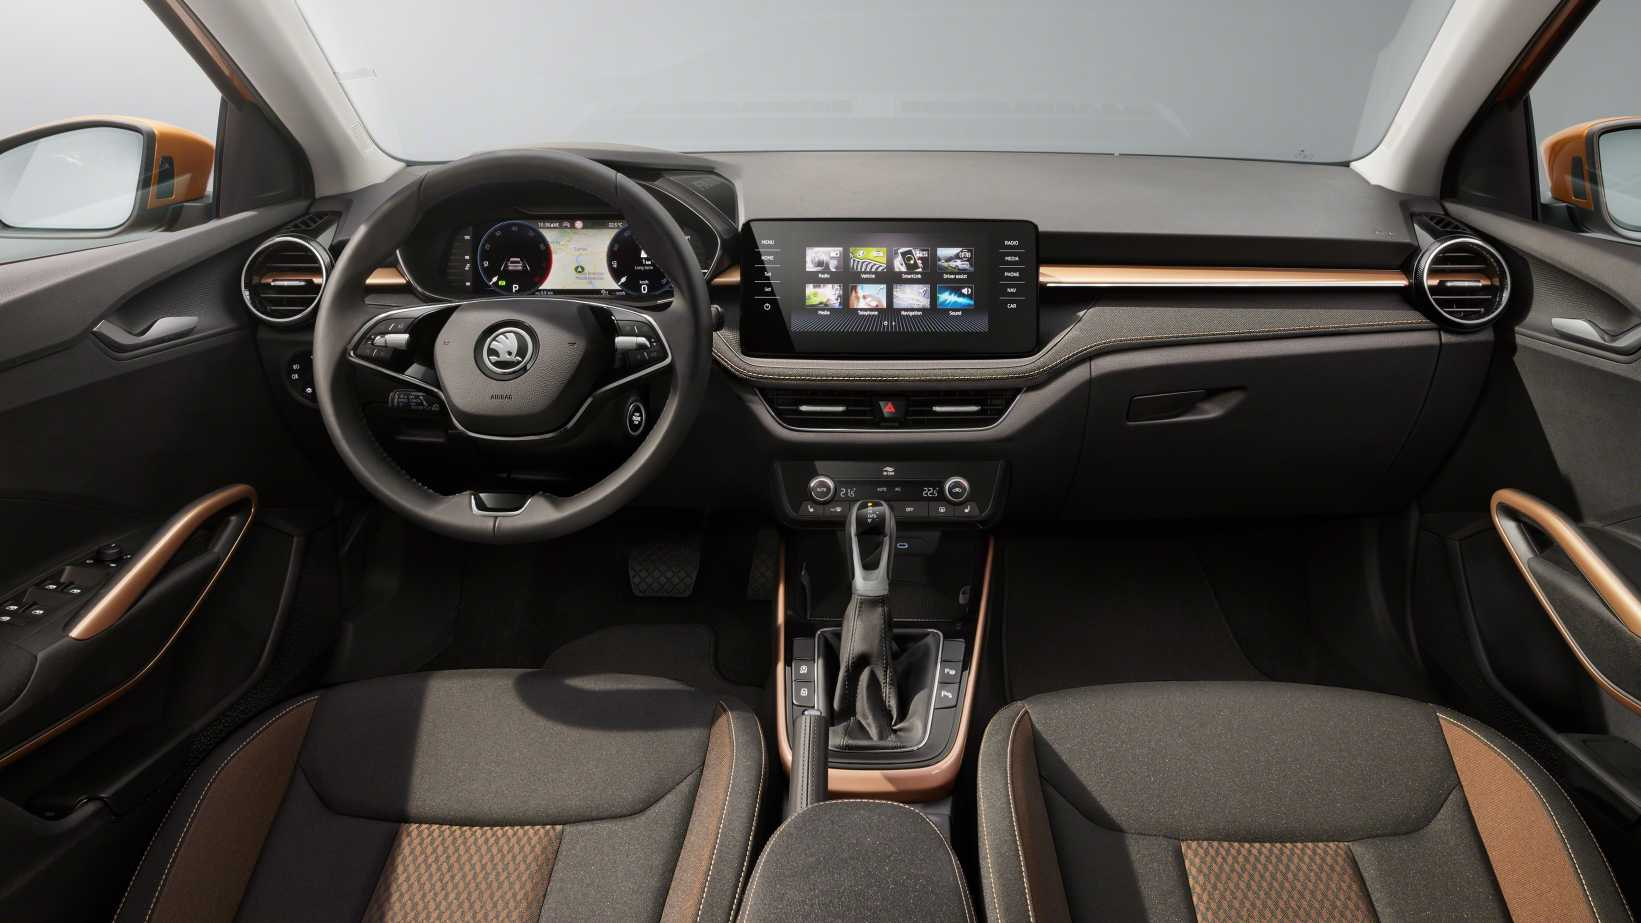 The new Skoda Fabia's interior appears to have plenty in common with the Kushaq's. Image: Skoda